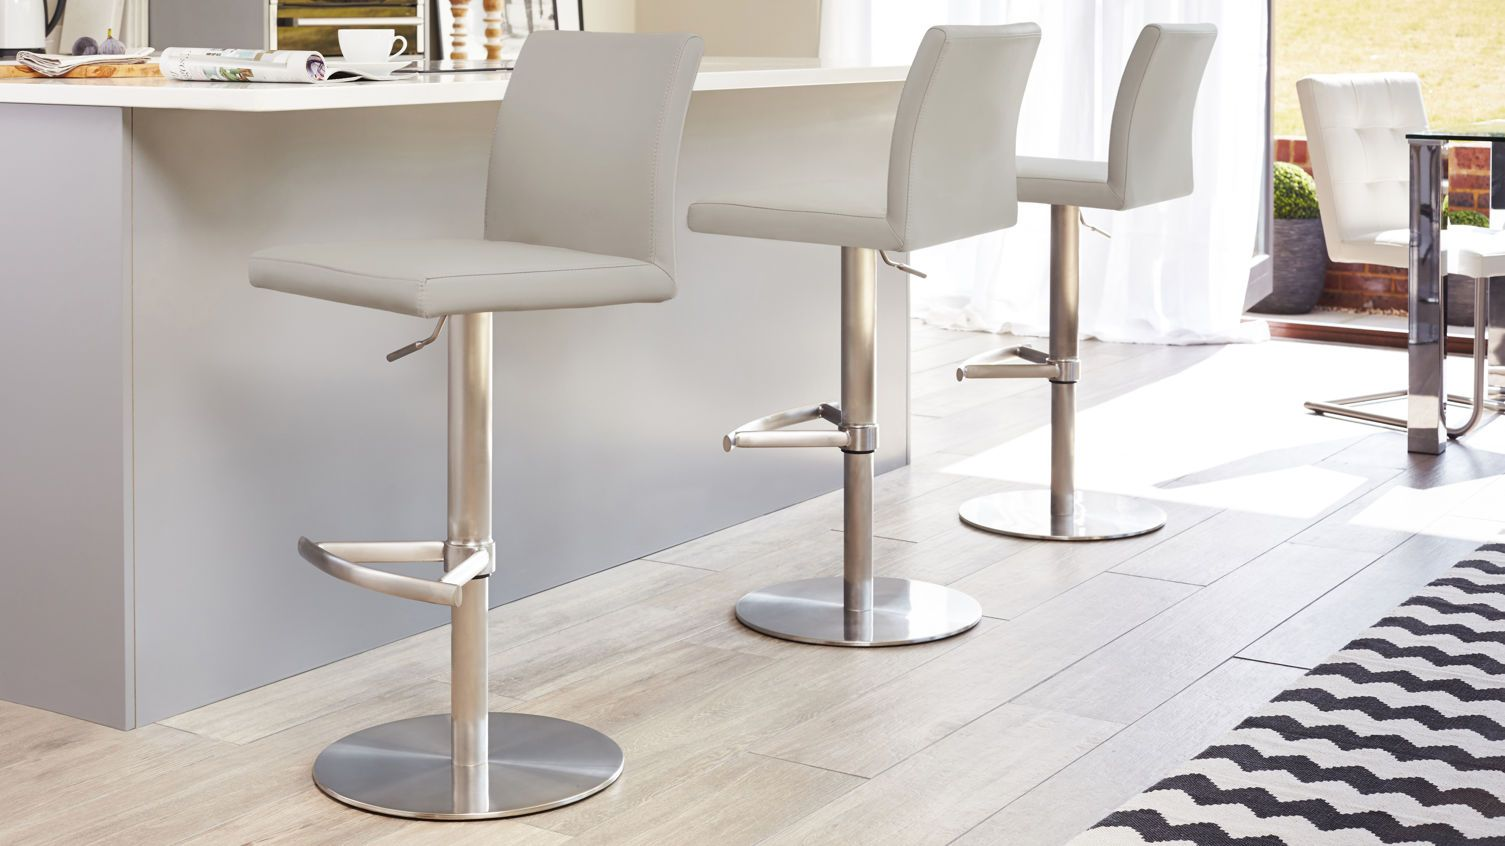 Elise Stainless Steel Gas Lift Bar Stool in cool grey from Danetti.